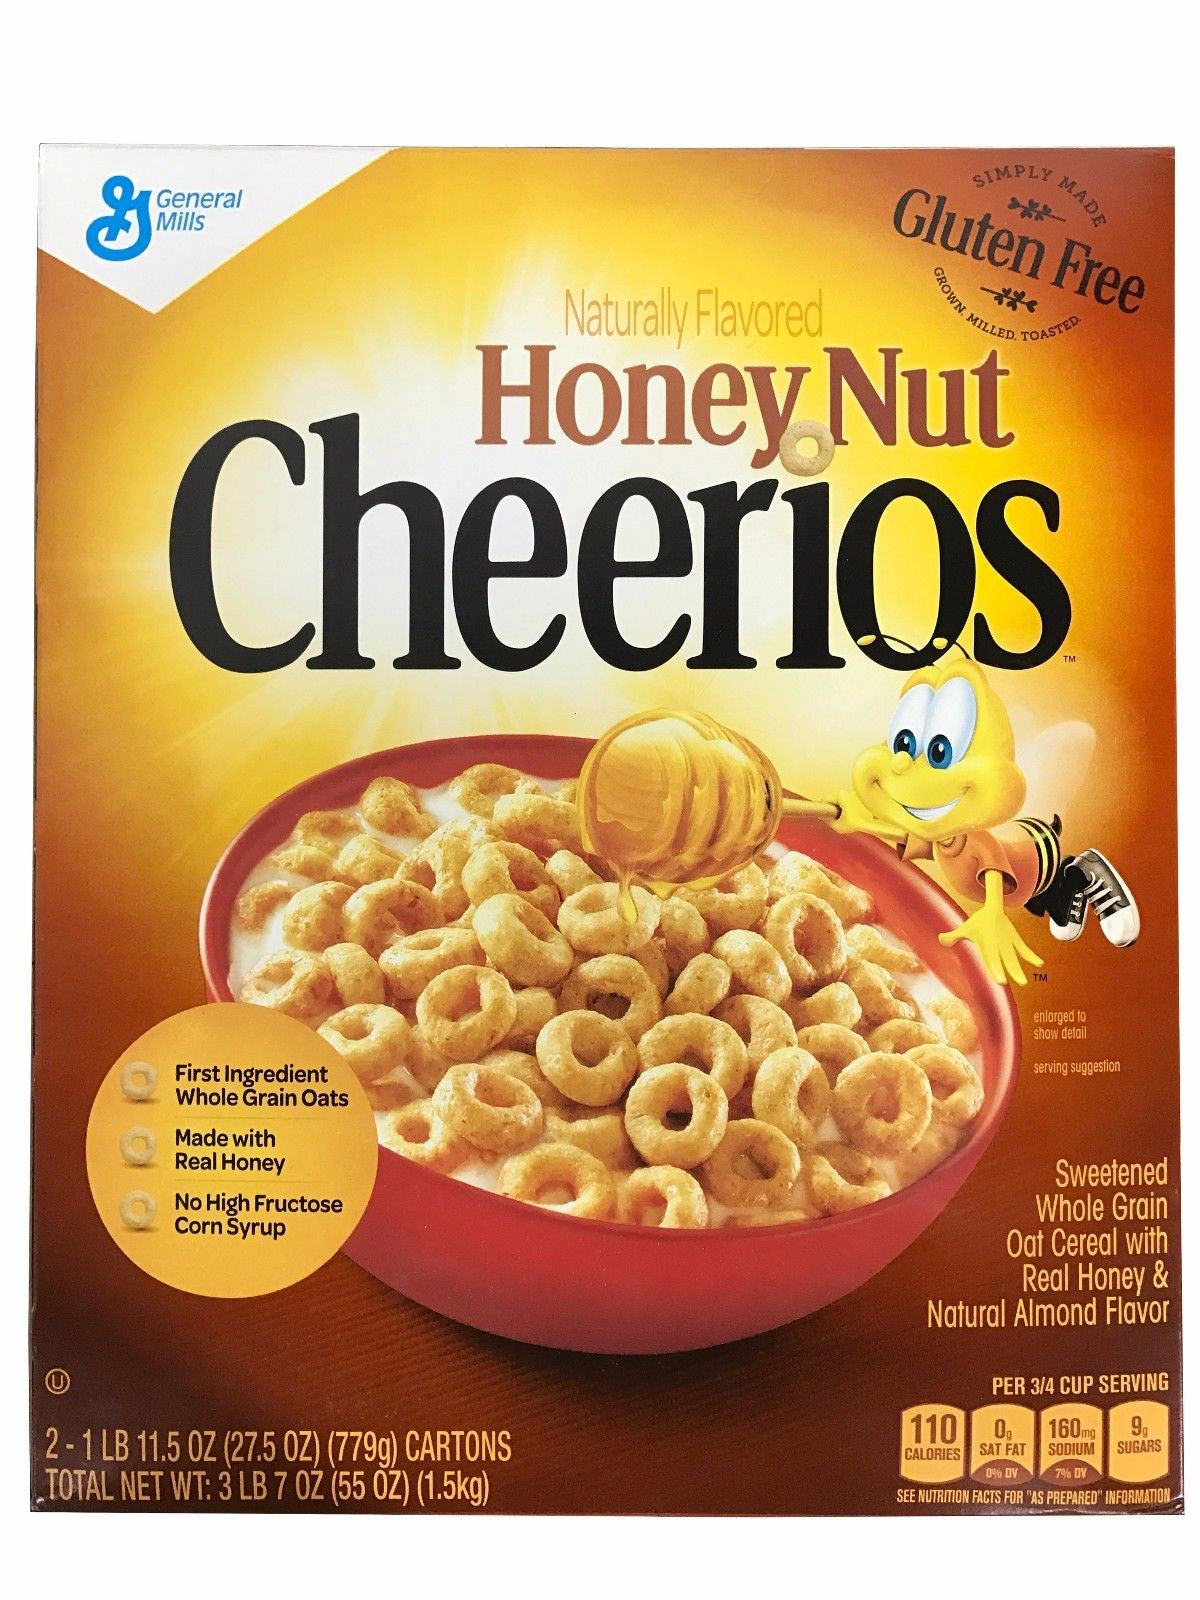 Honey Nut Cheerios Naturally Flavored Whole Grain 3 LB 7 OZ